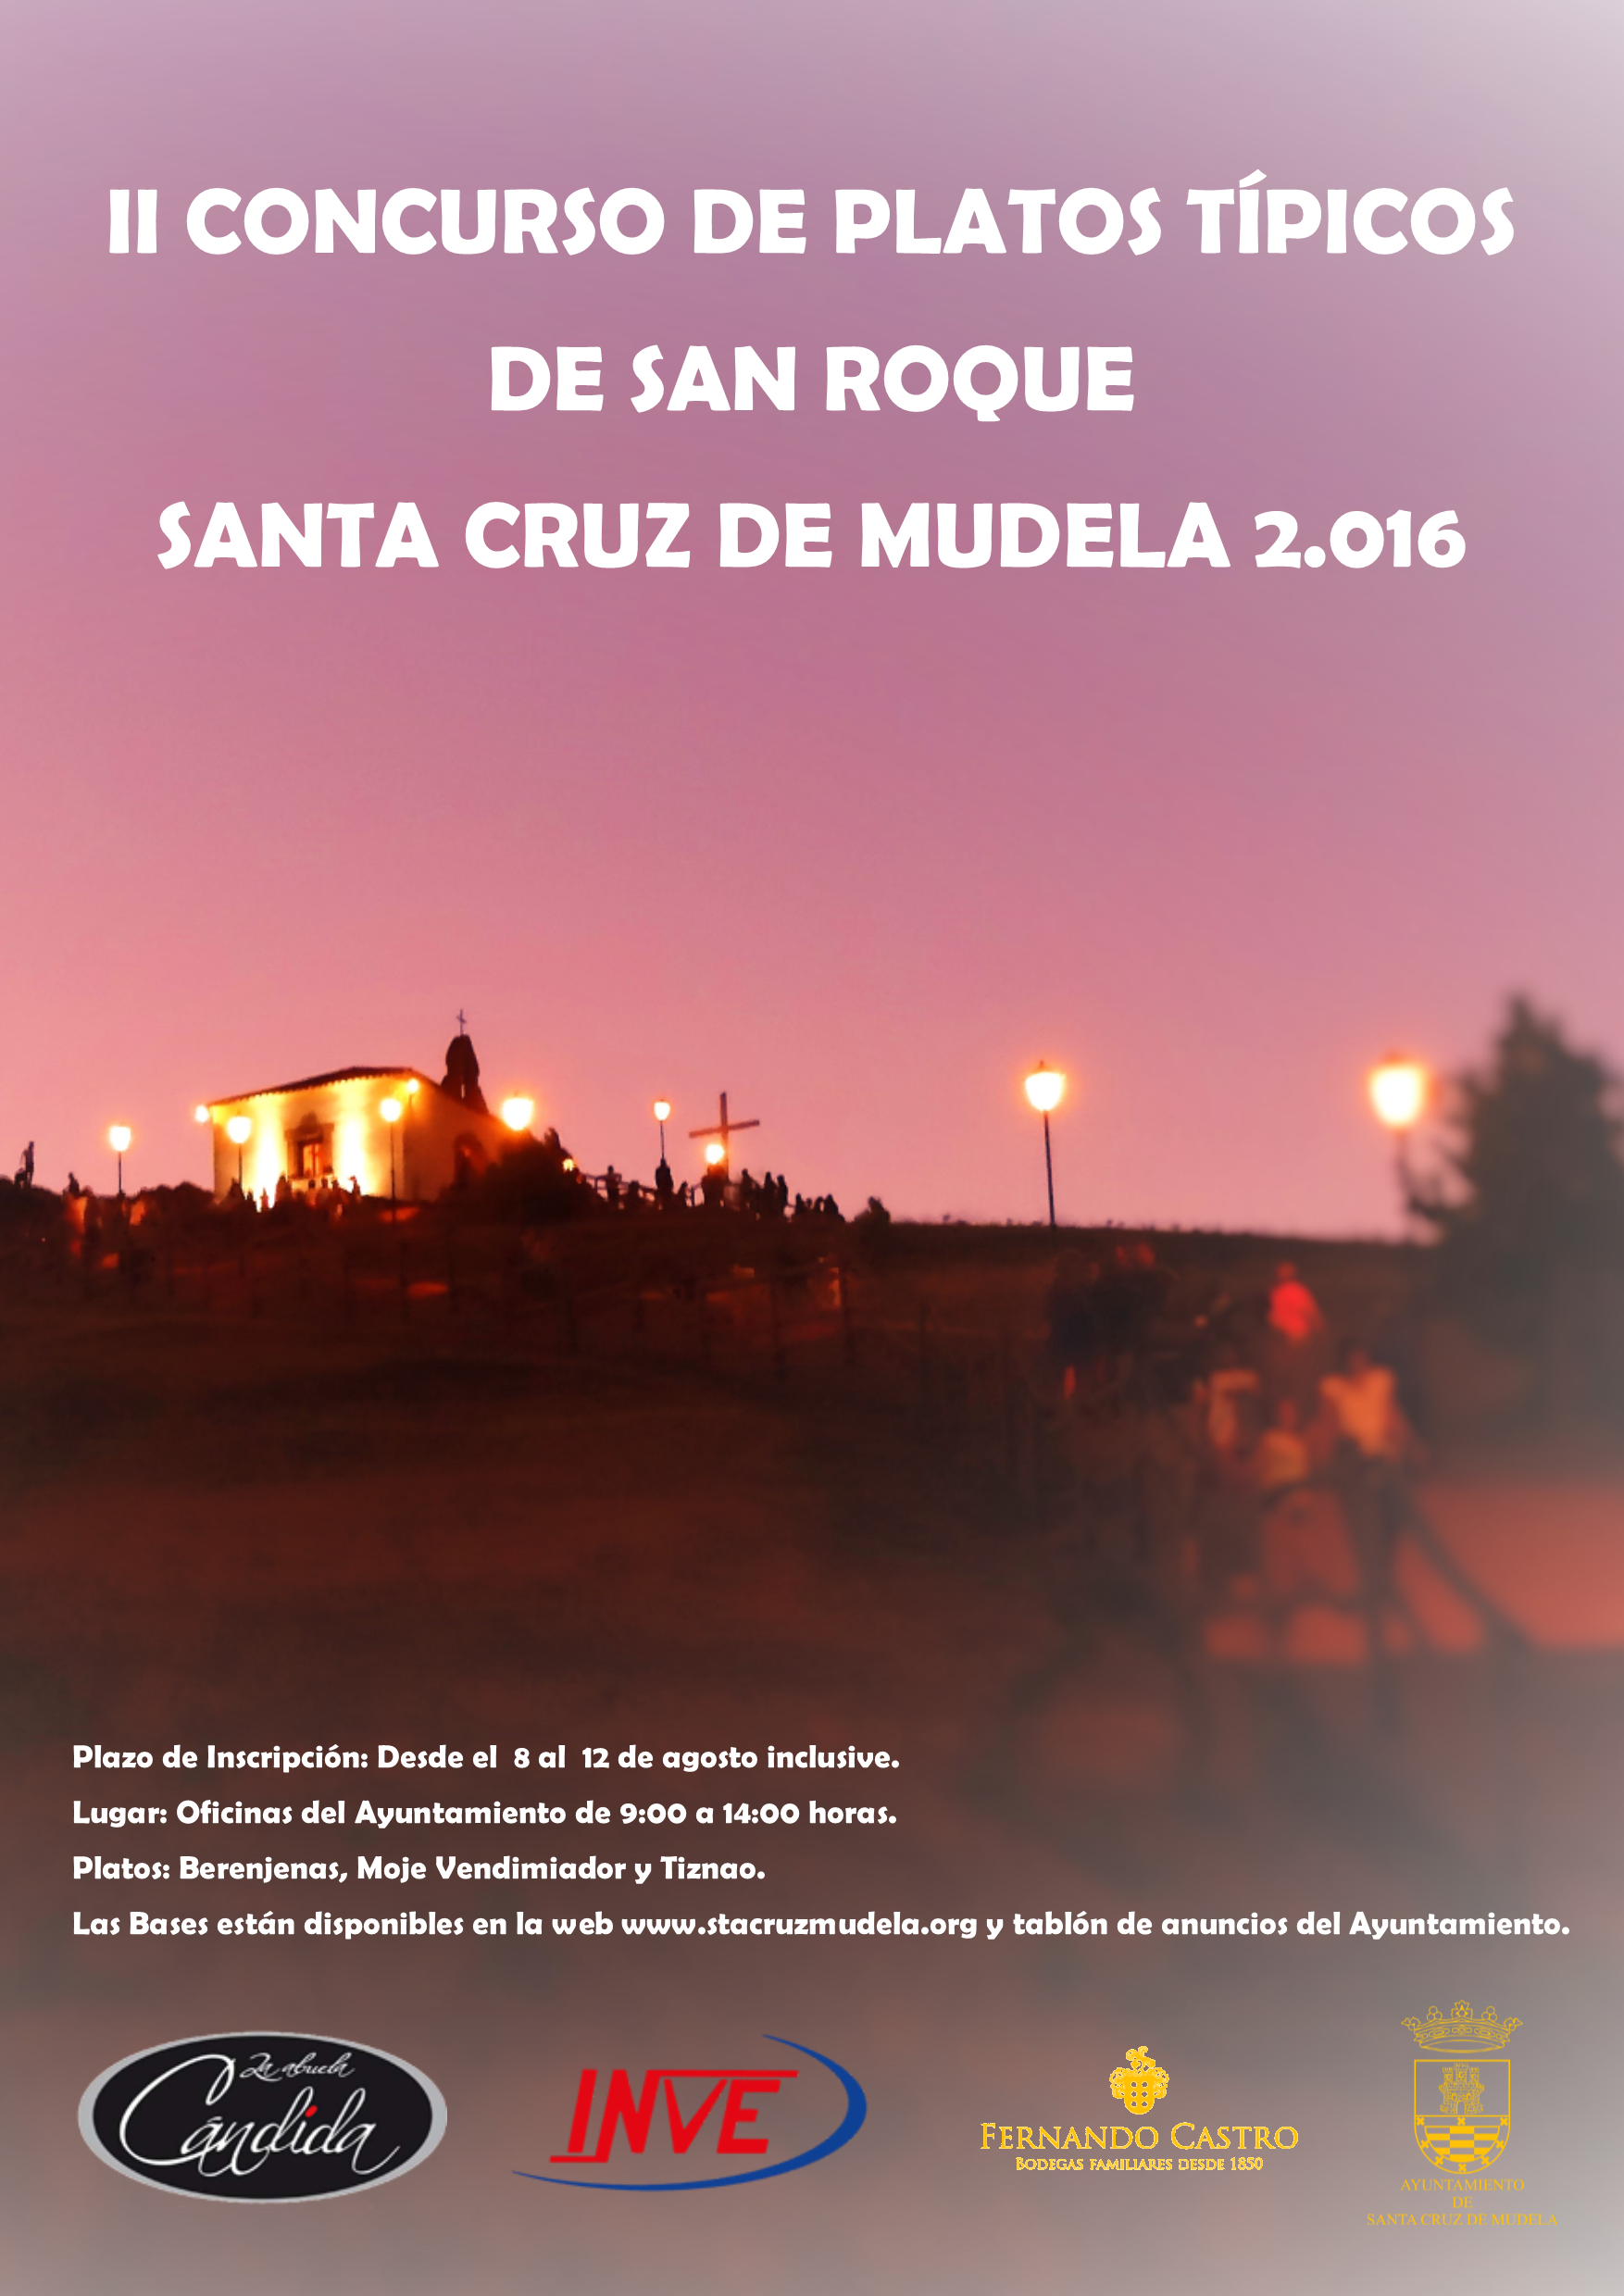 Cartel de San Roque 2.016